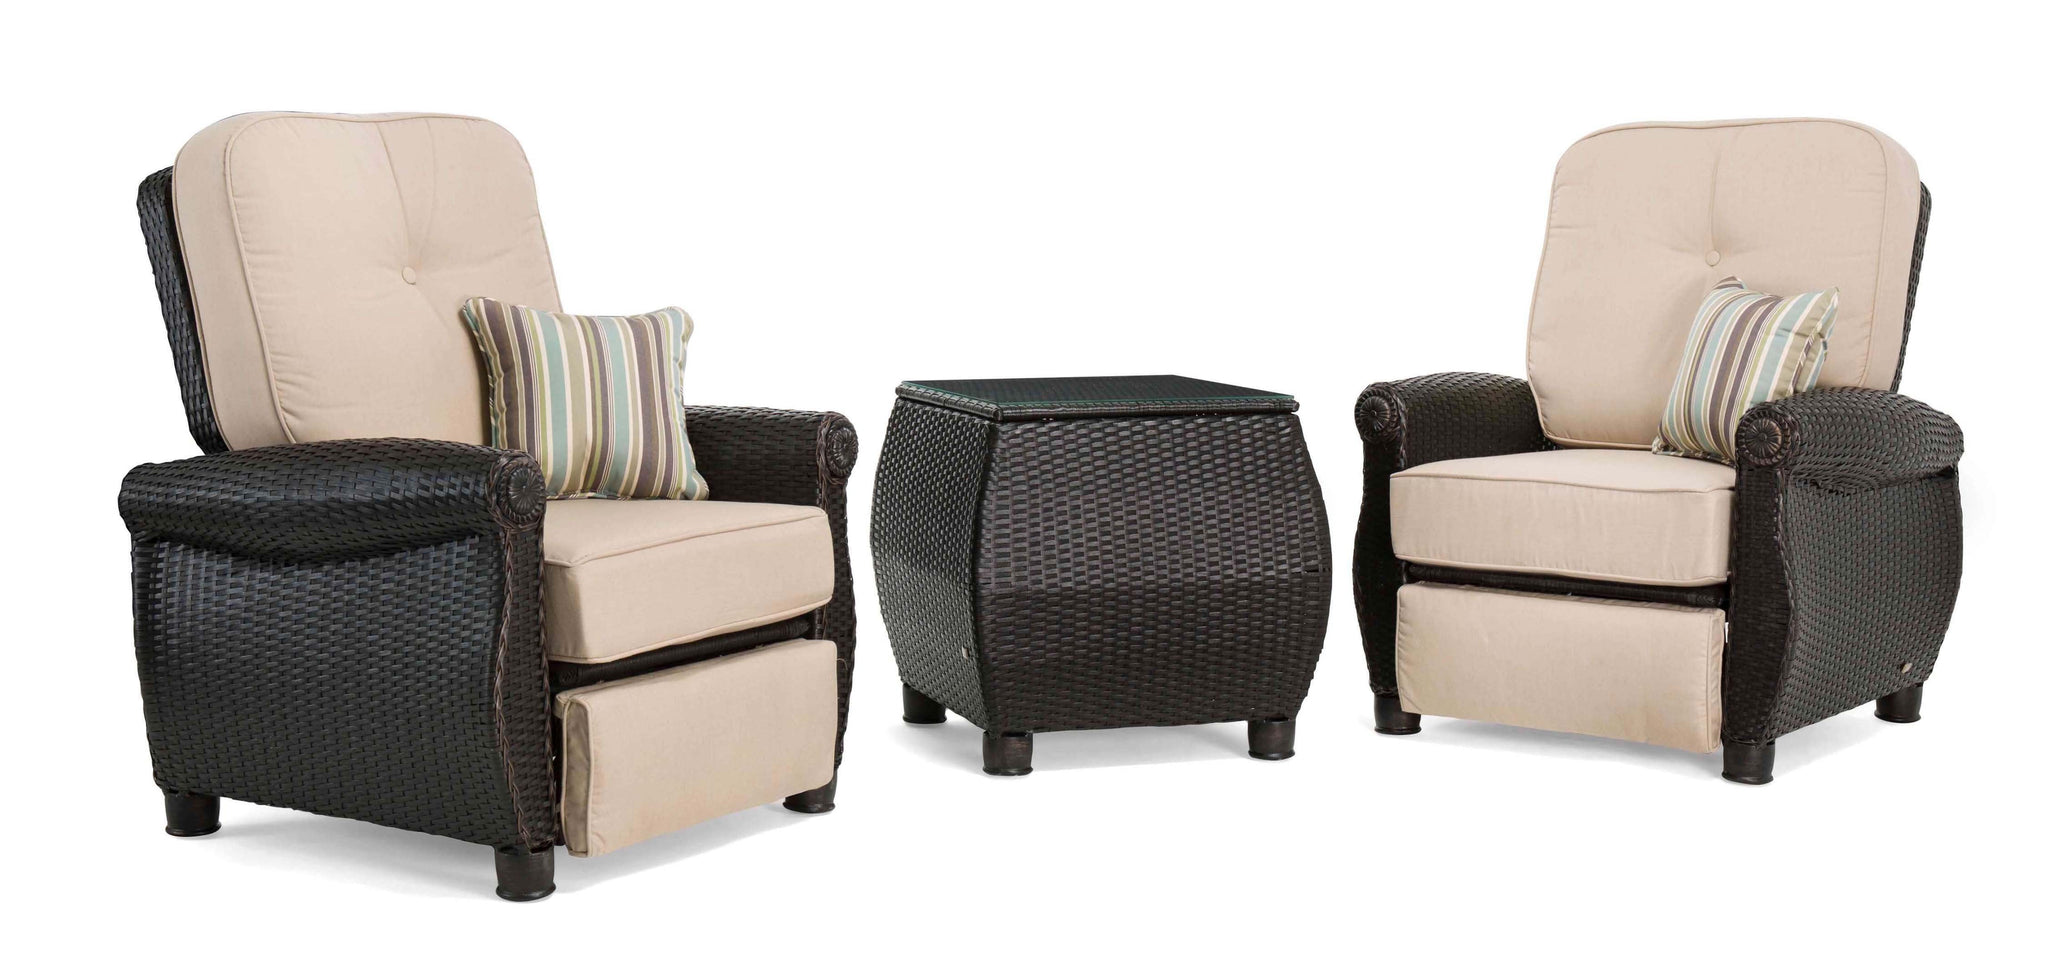 Attirant Breckenridge 3 Piece Patio Furniture Set: Two Recliners (Natural Tan) And  Side Table